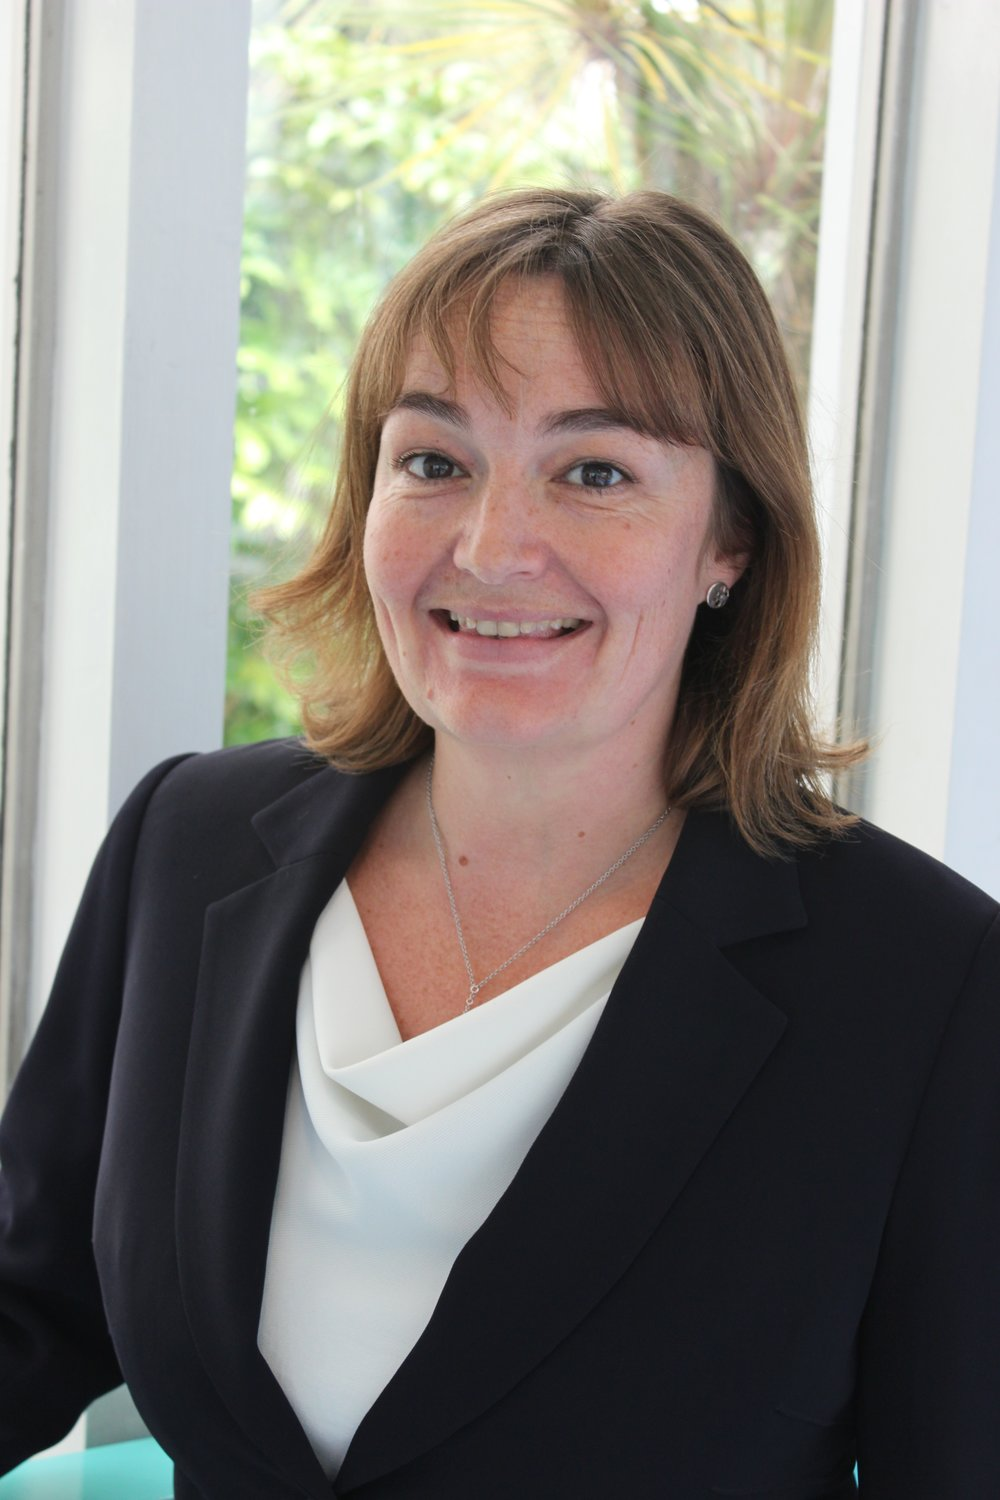 Project Lead: Dr Lara Alloway, Medical Director and Palliative Care Consultant